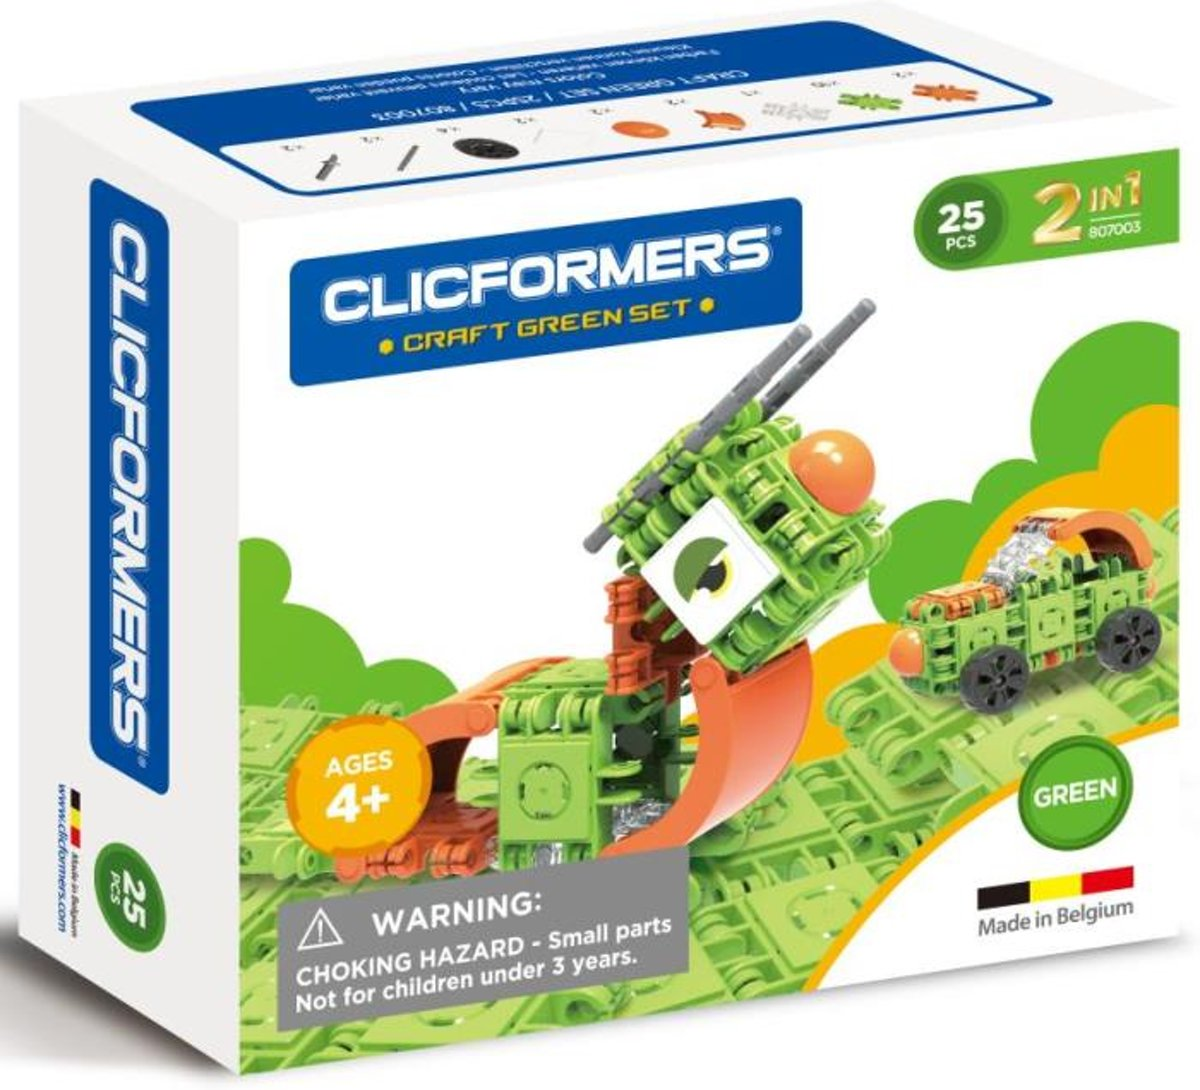 Clicformers - Craft Set Green - 25 pcs